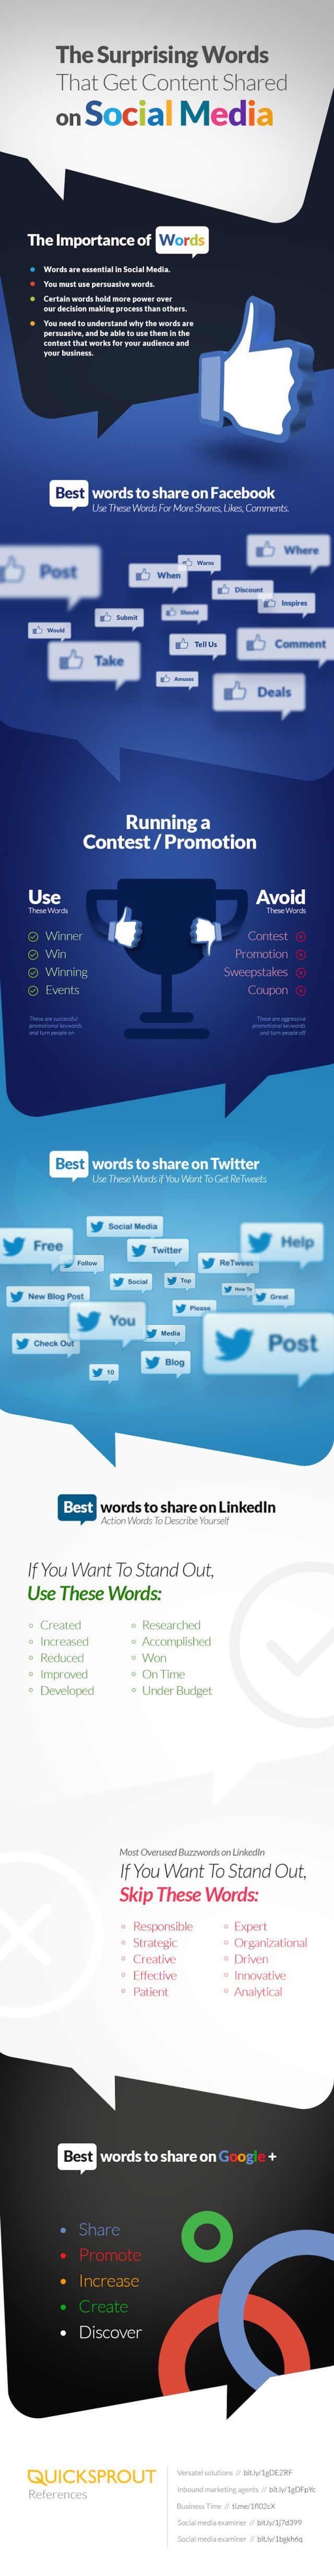 40 POWER Words That Will Make People Share Your Content on Social Media